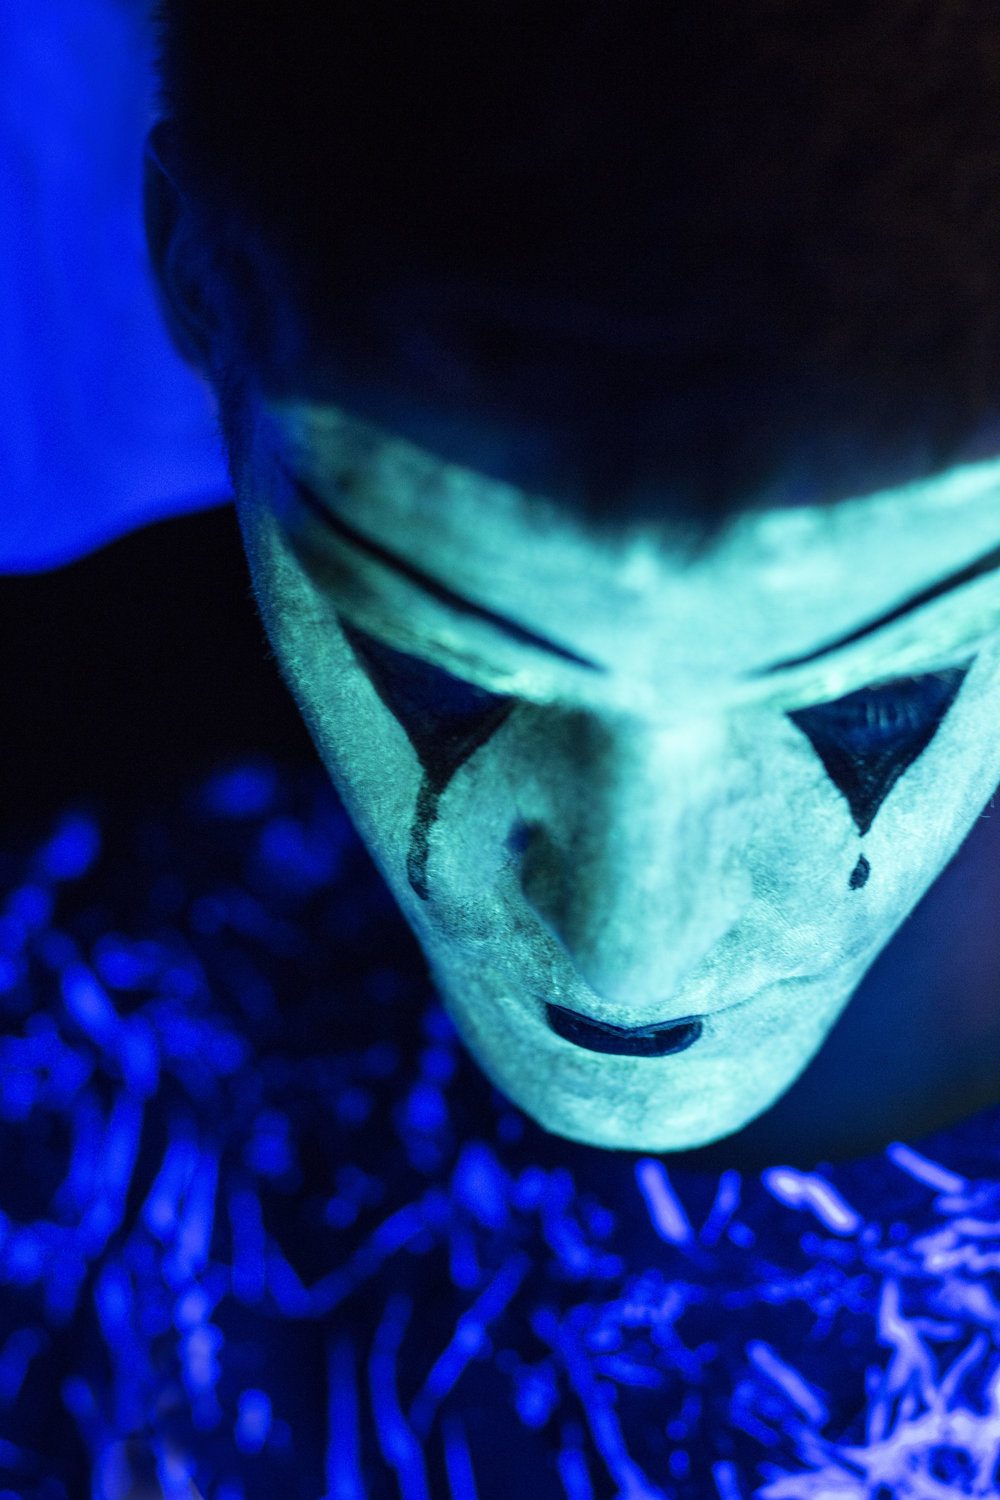 - Using UV make up and black lights. Theme: MimeModel: Chance Mclaren Makeup artist: Talitha Vanzo http://hypercardiac.wixsite.com/tvsmakeup/about